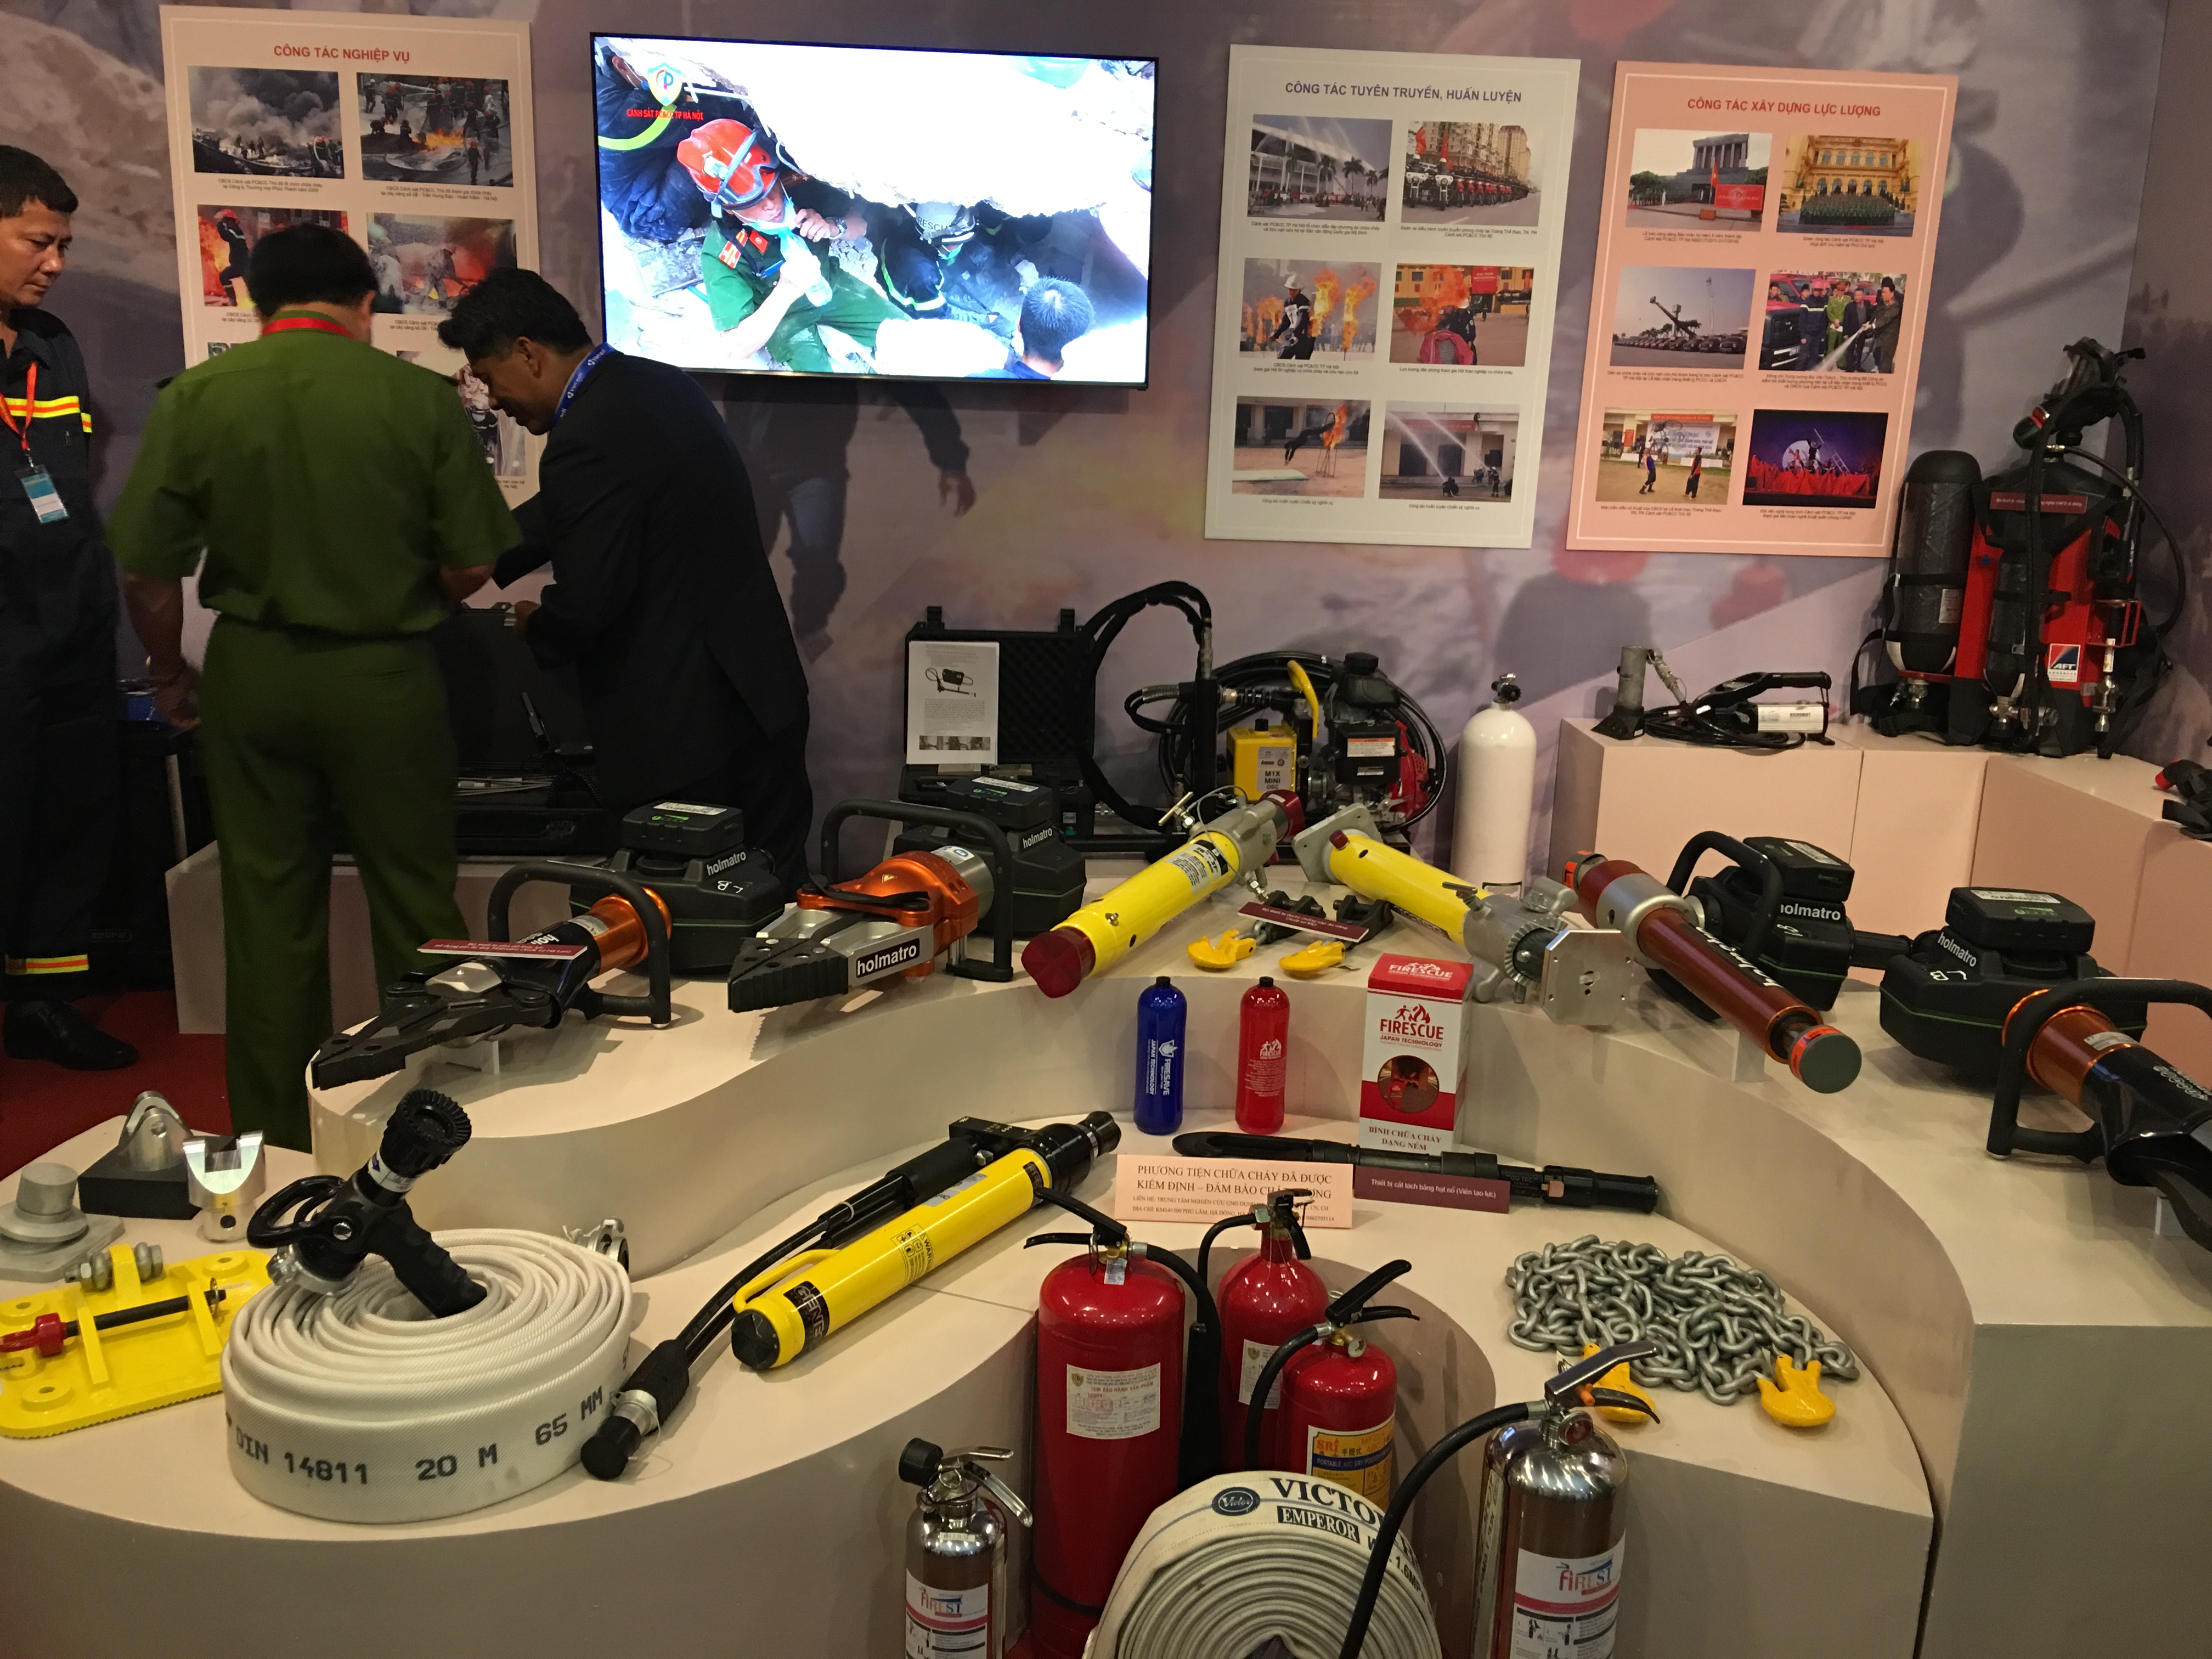 International Security and Fire Safety Exhibit opens in Hanoi